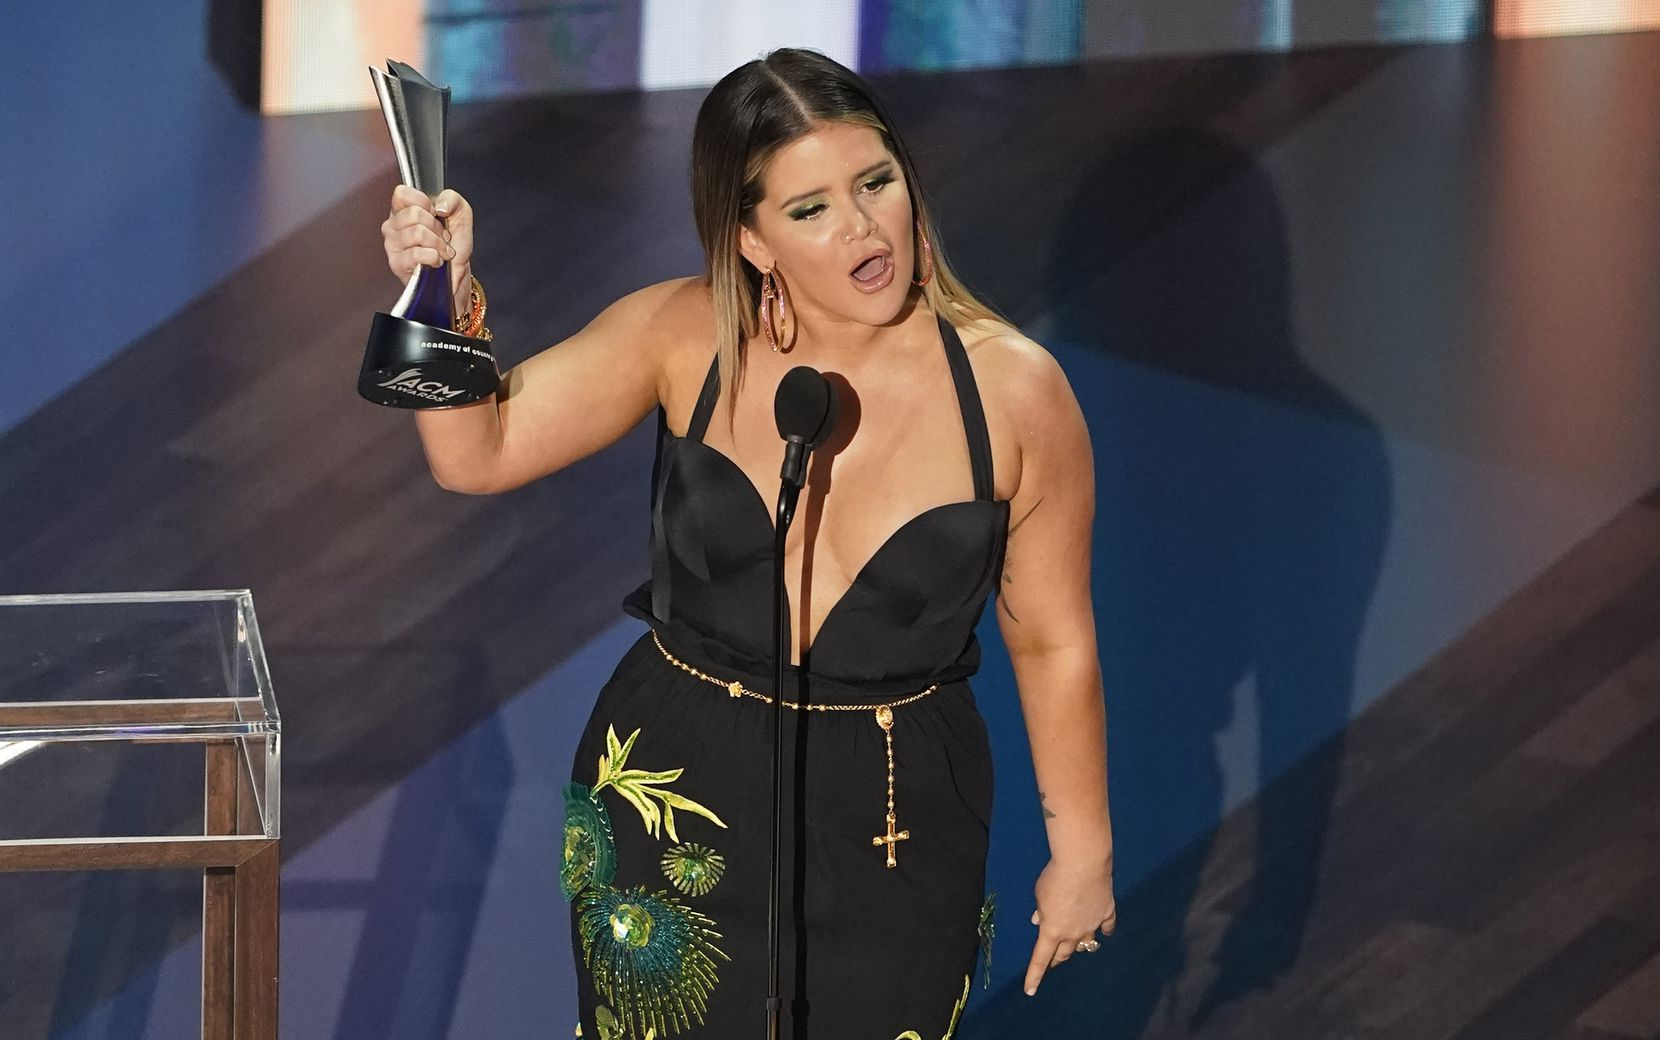 Maren Morris won two awards, including female artist of the year and music event of the year, for a collaboration with Miranda Lambert, Caylee Hammack, Tenille Townes, Elle King and Ashley McBryde.